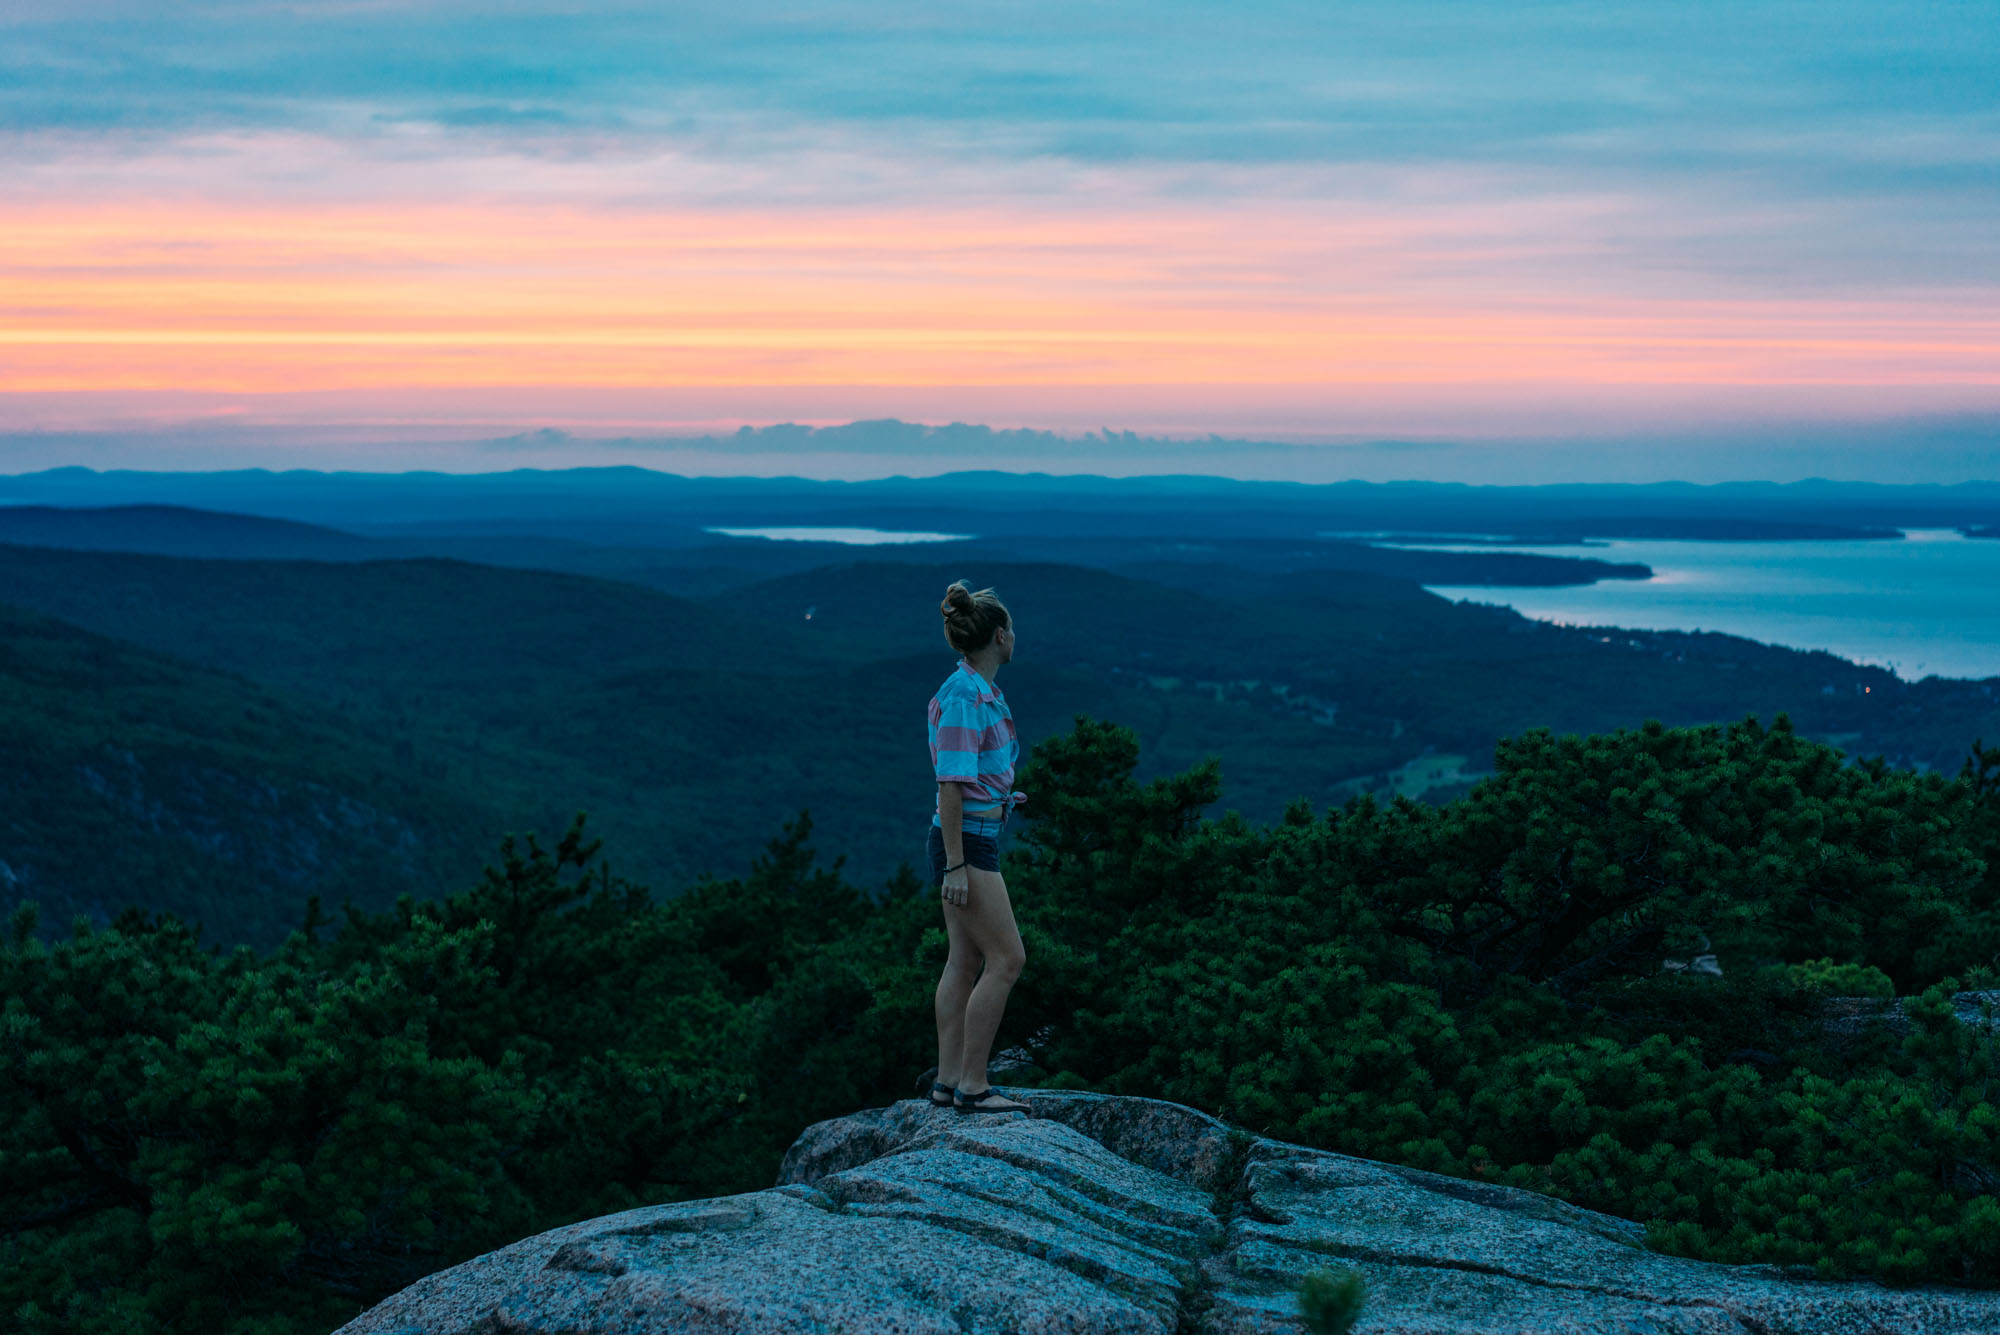 Sunset from the top of Precipice Mountain